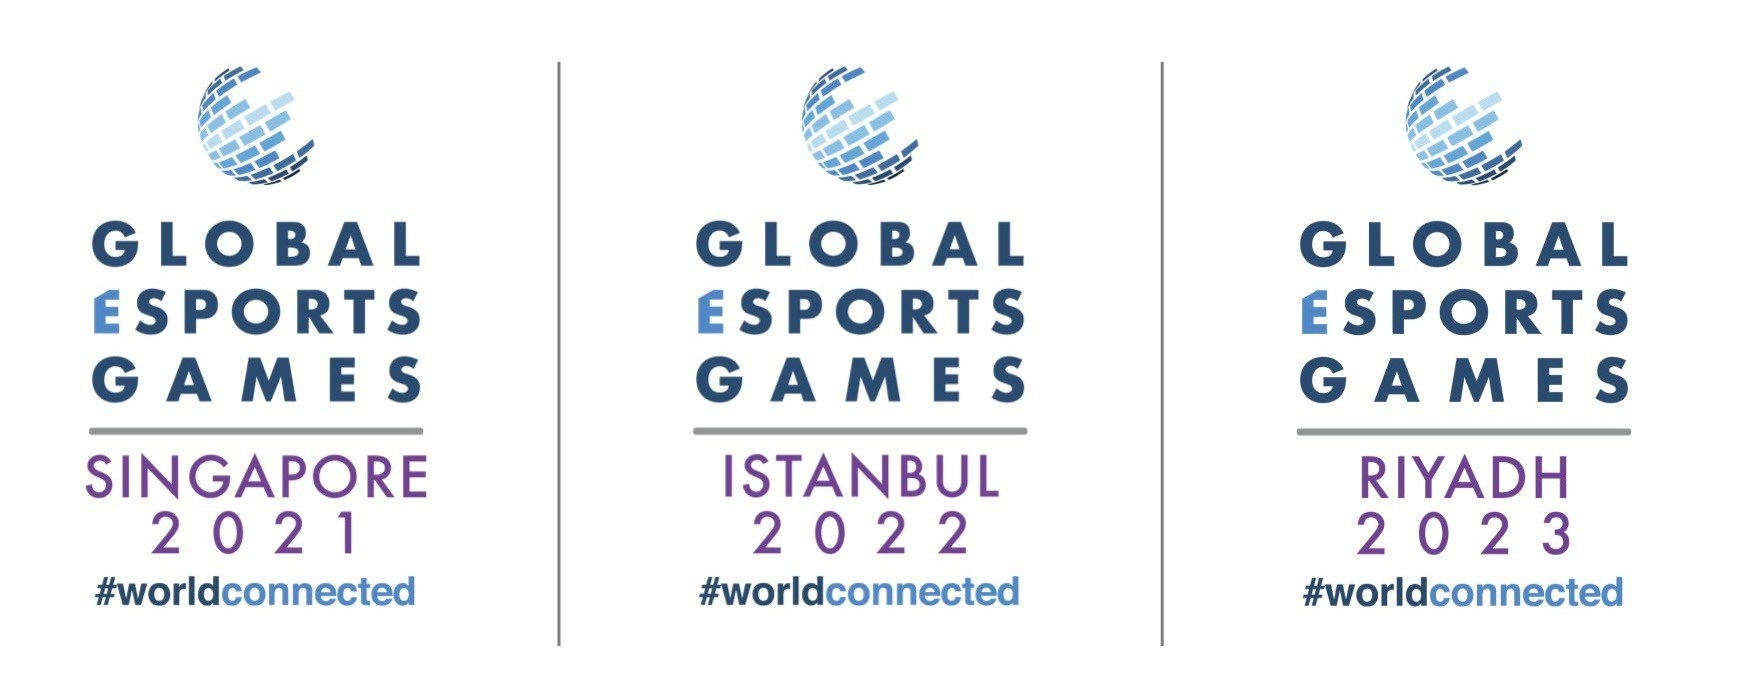 Global Esports Games Headed to Singapore, Istanbul, Riyadh - Brand Icon  Image - Latest Brand, Tech and Business News